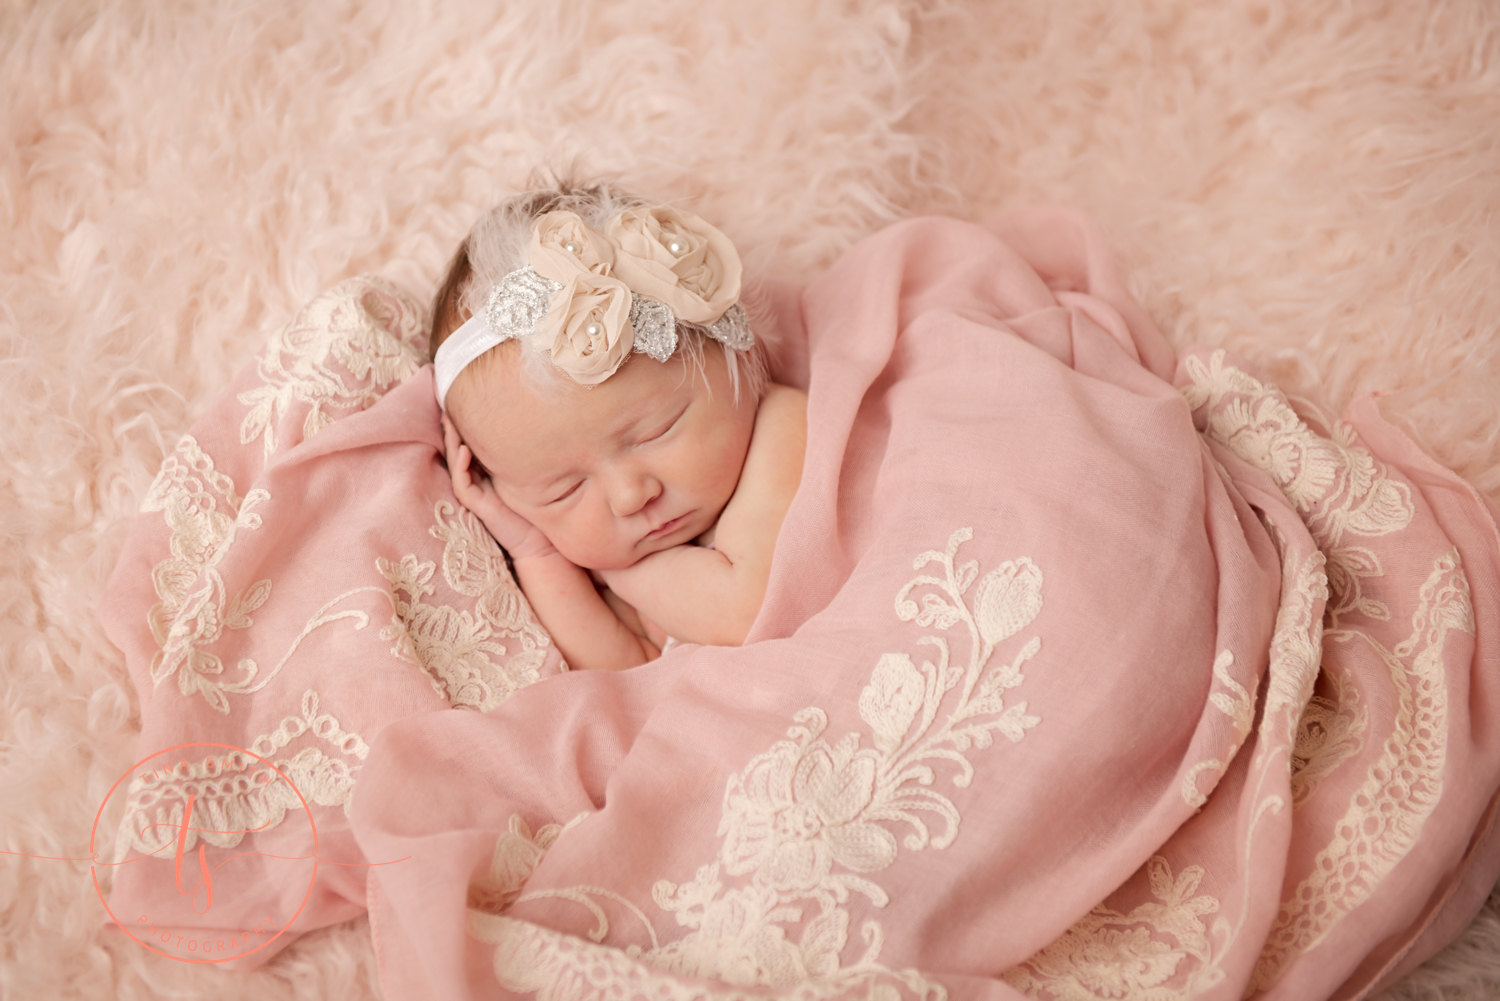 newborn baby on beige fur with pink flowered wrap posed for pictures